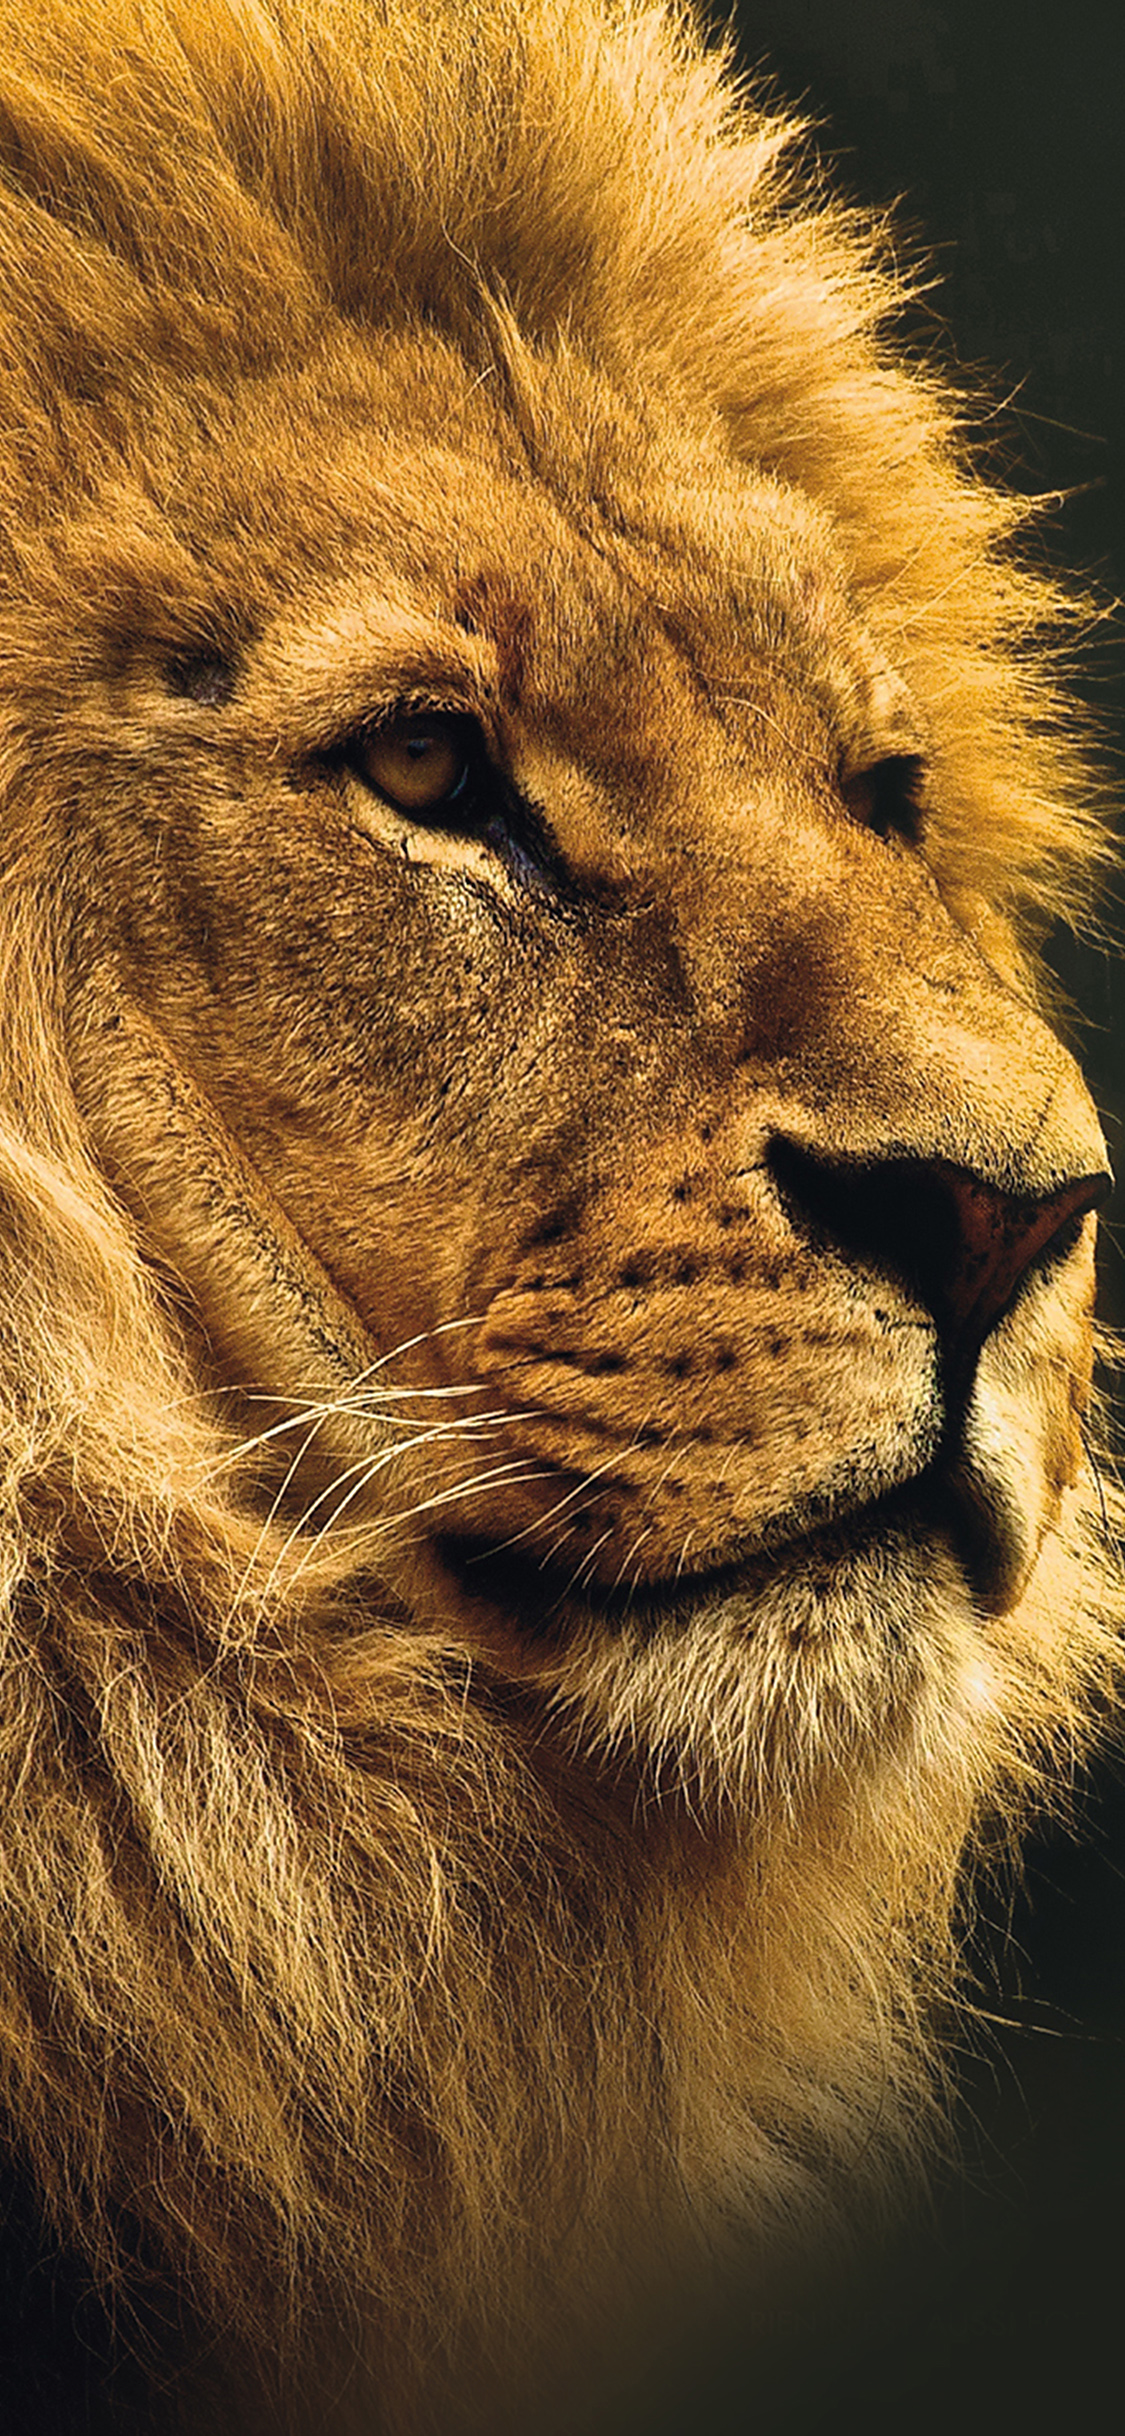 iPhoneXpapers.com-Apple-iPhone-wallpaper-mu49-national-geographic-nature-animal-lion-yellow